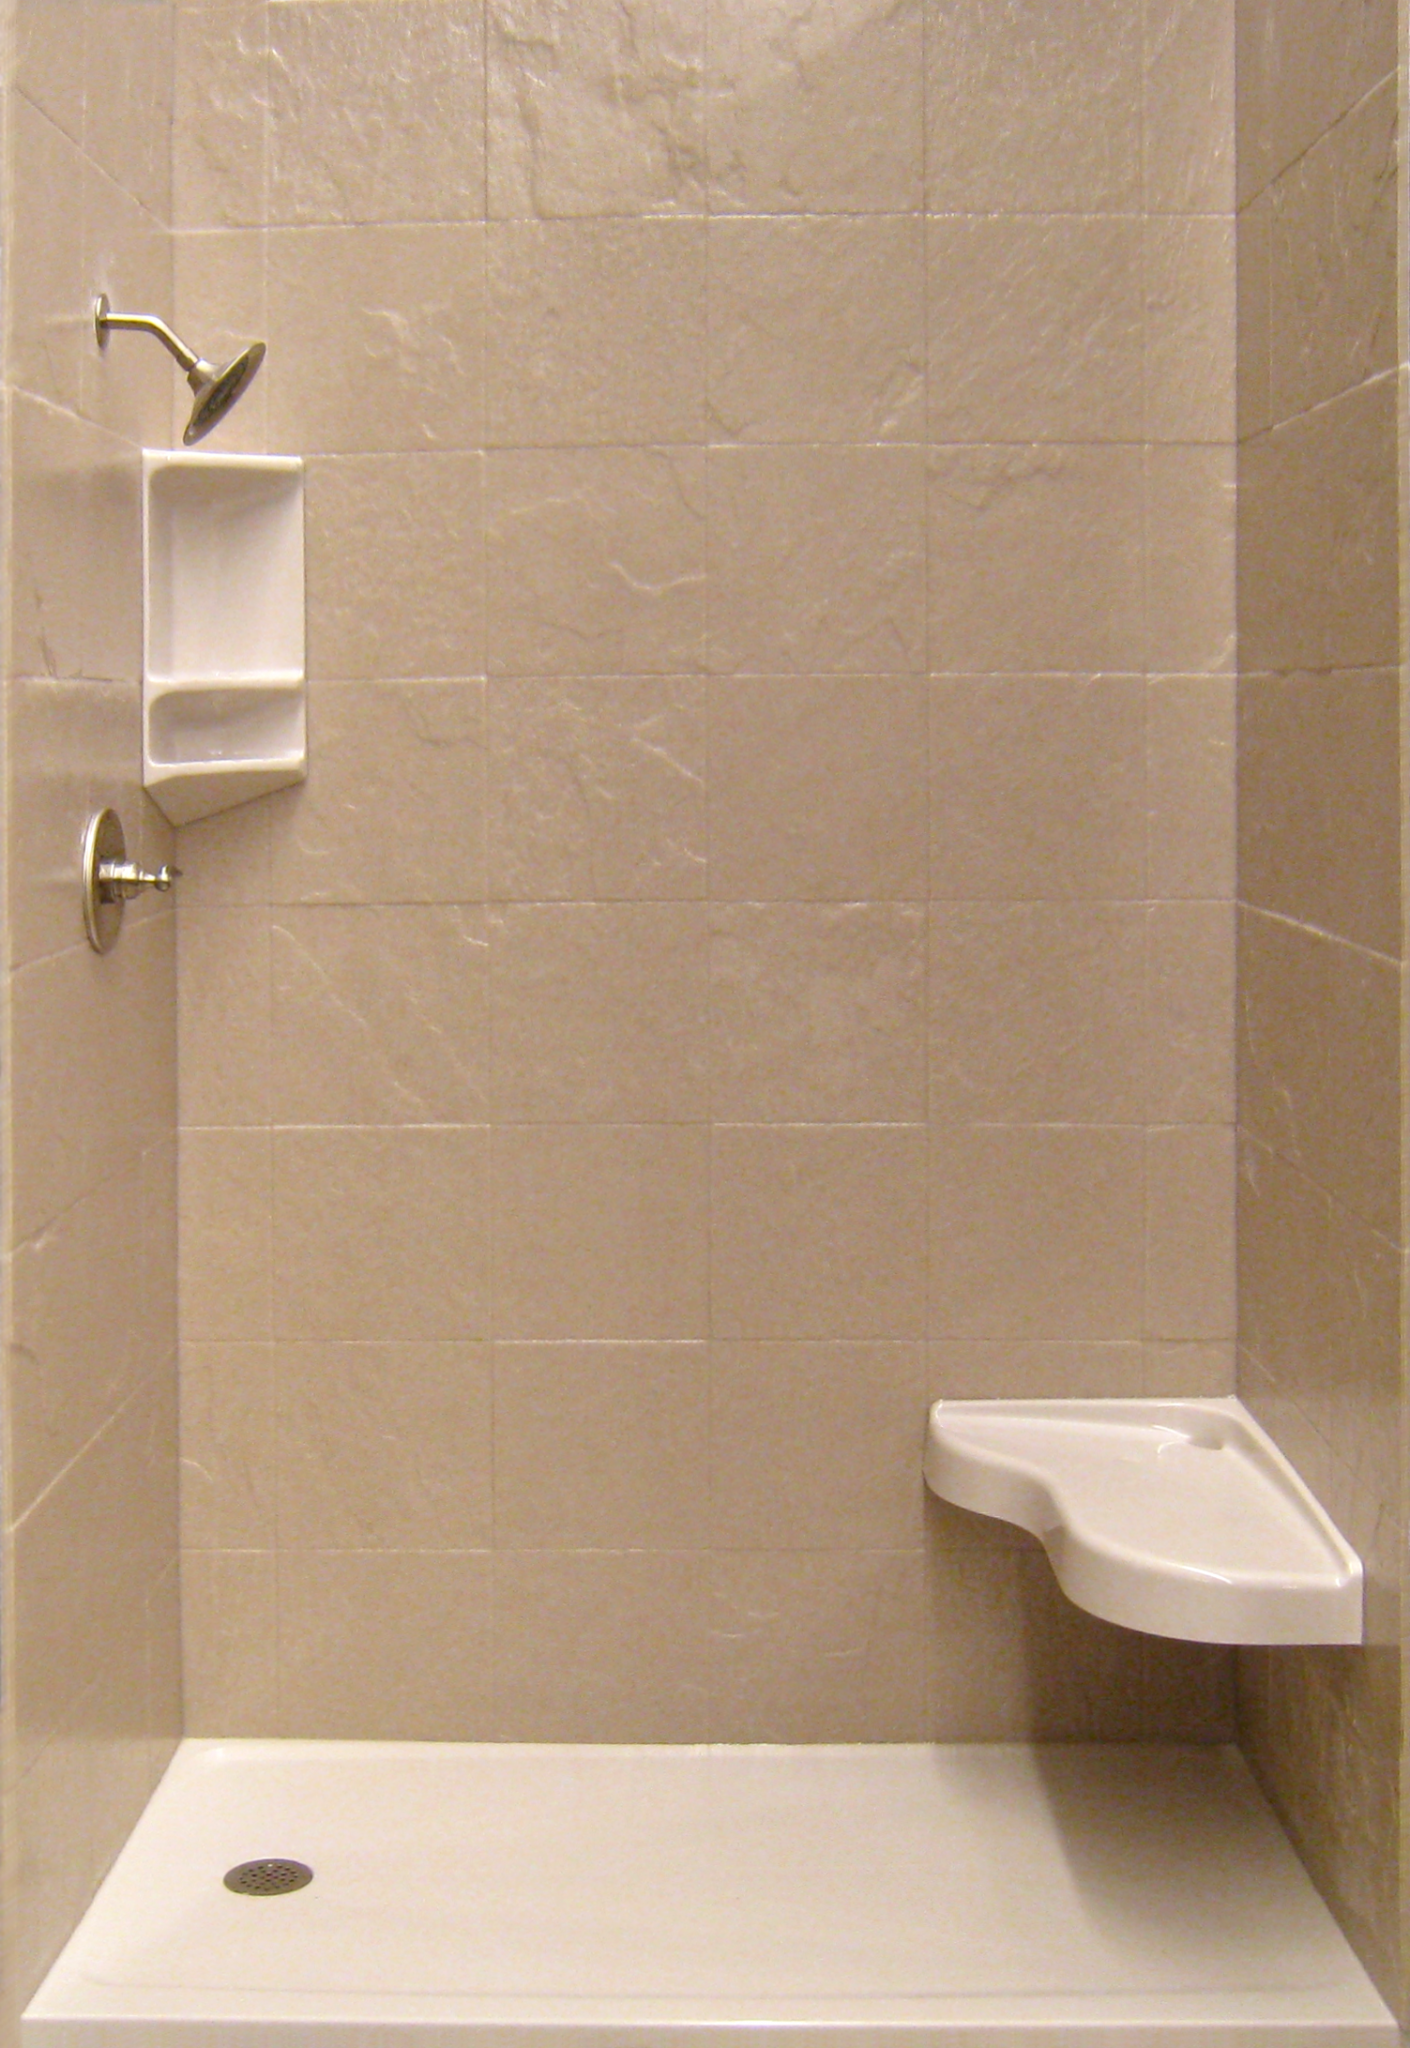 Bathroom Remodeling Building a Better Bathroom With the yx